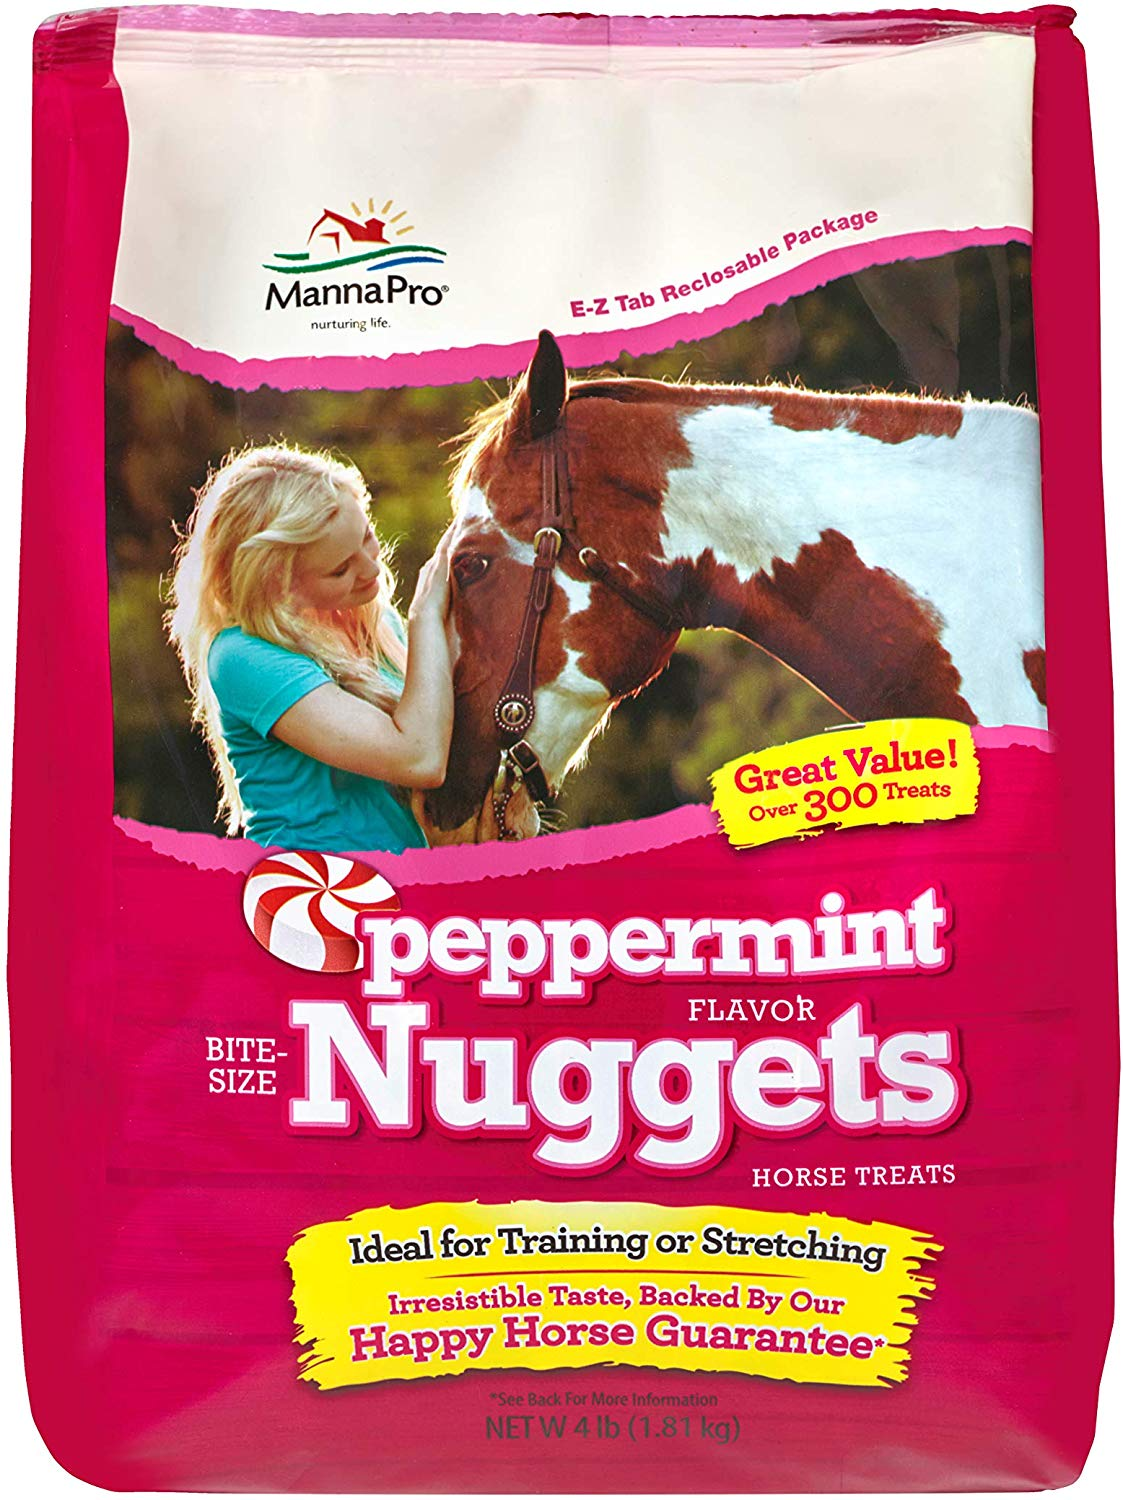 Manna Pro Peppermint Flavored Nuggets Horse Treats, 4-lb